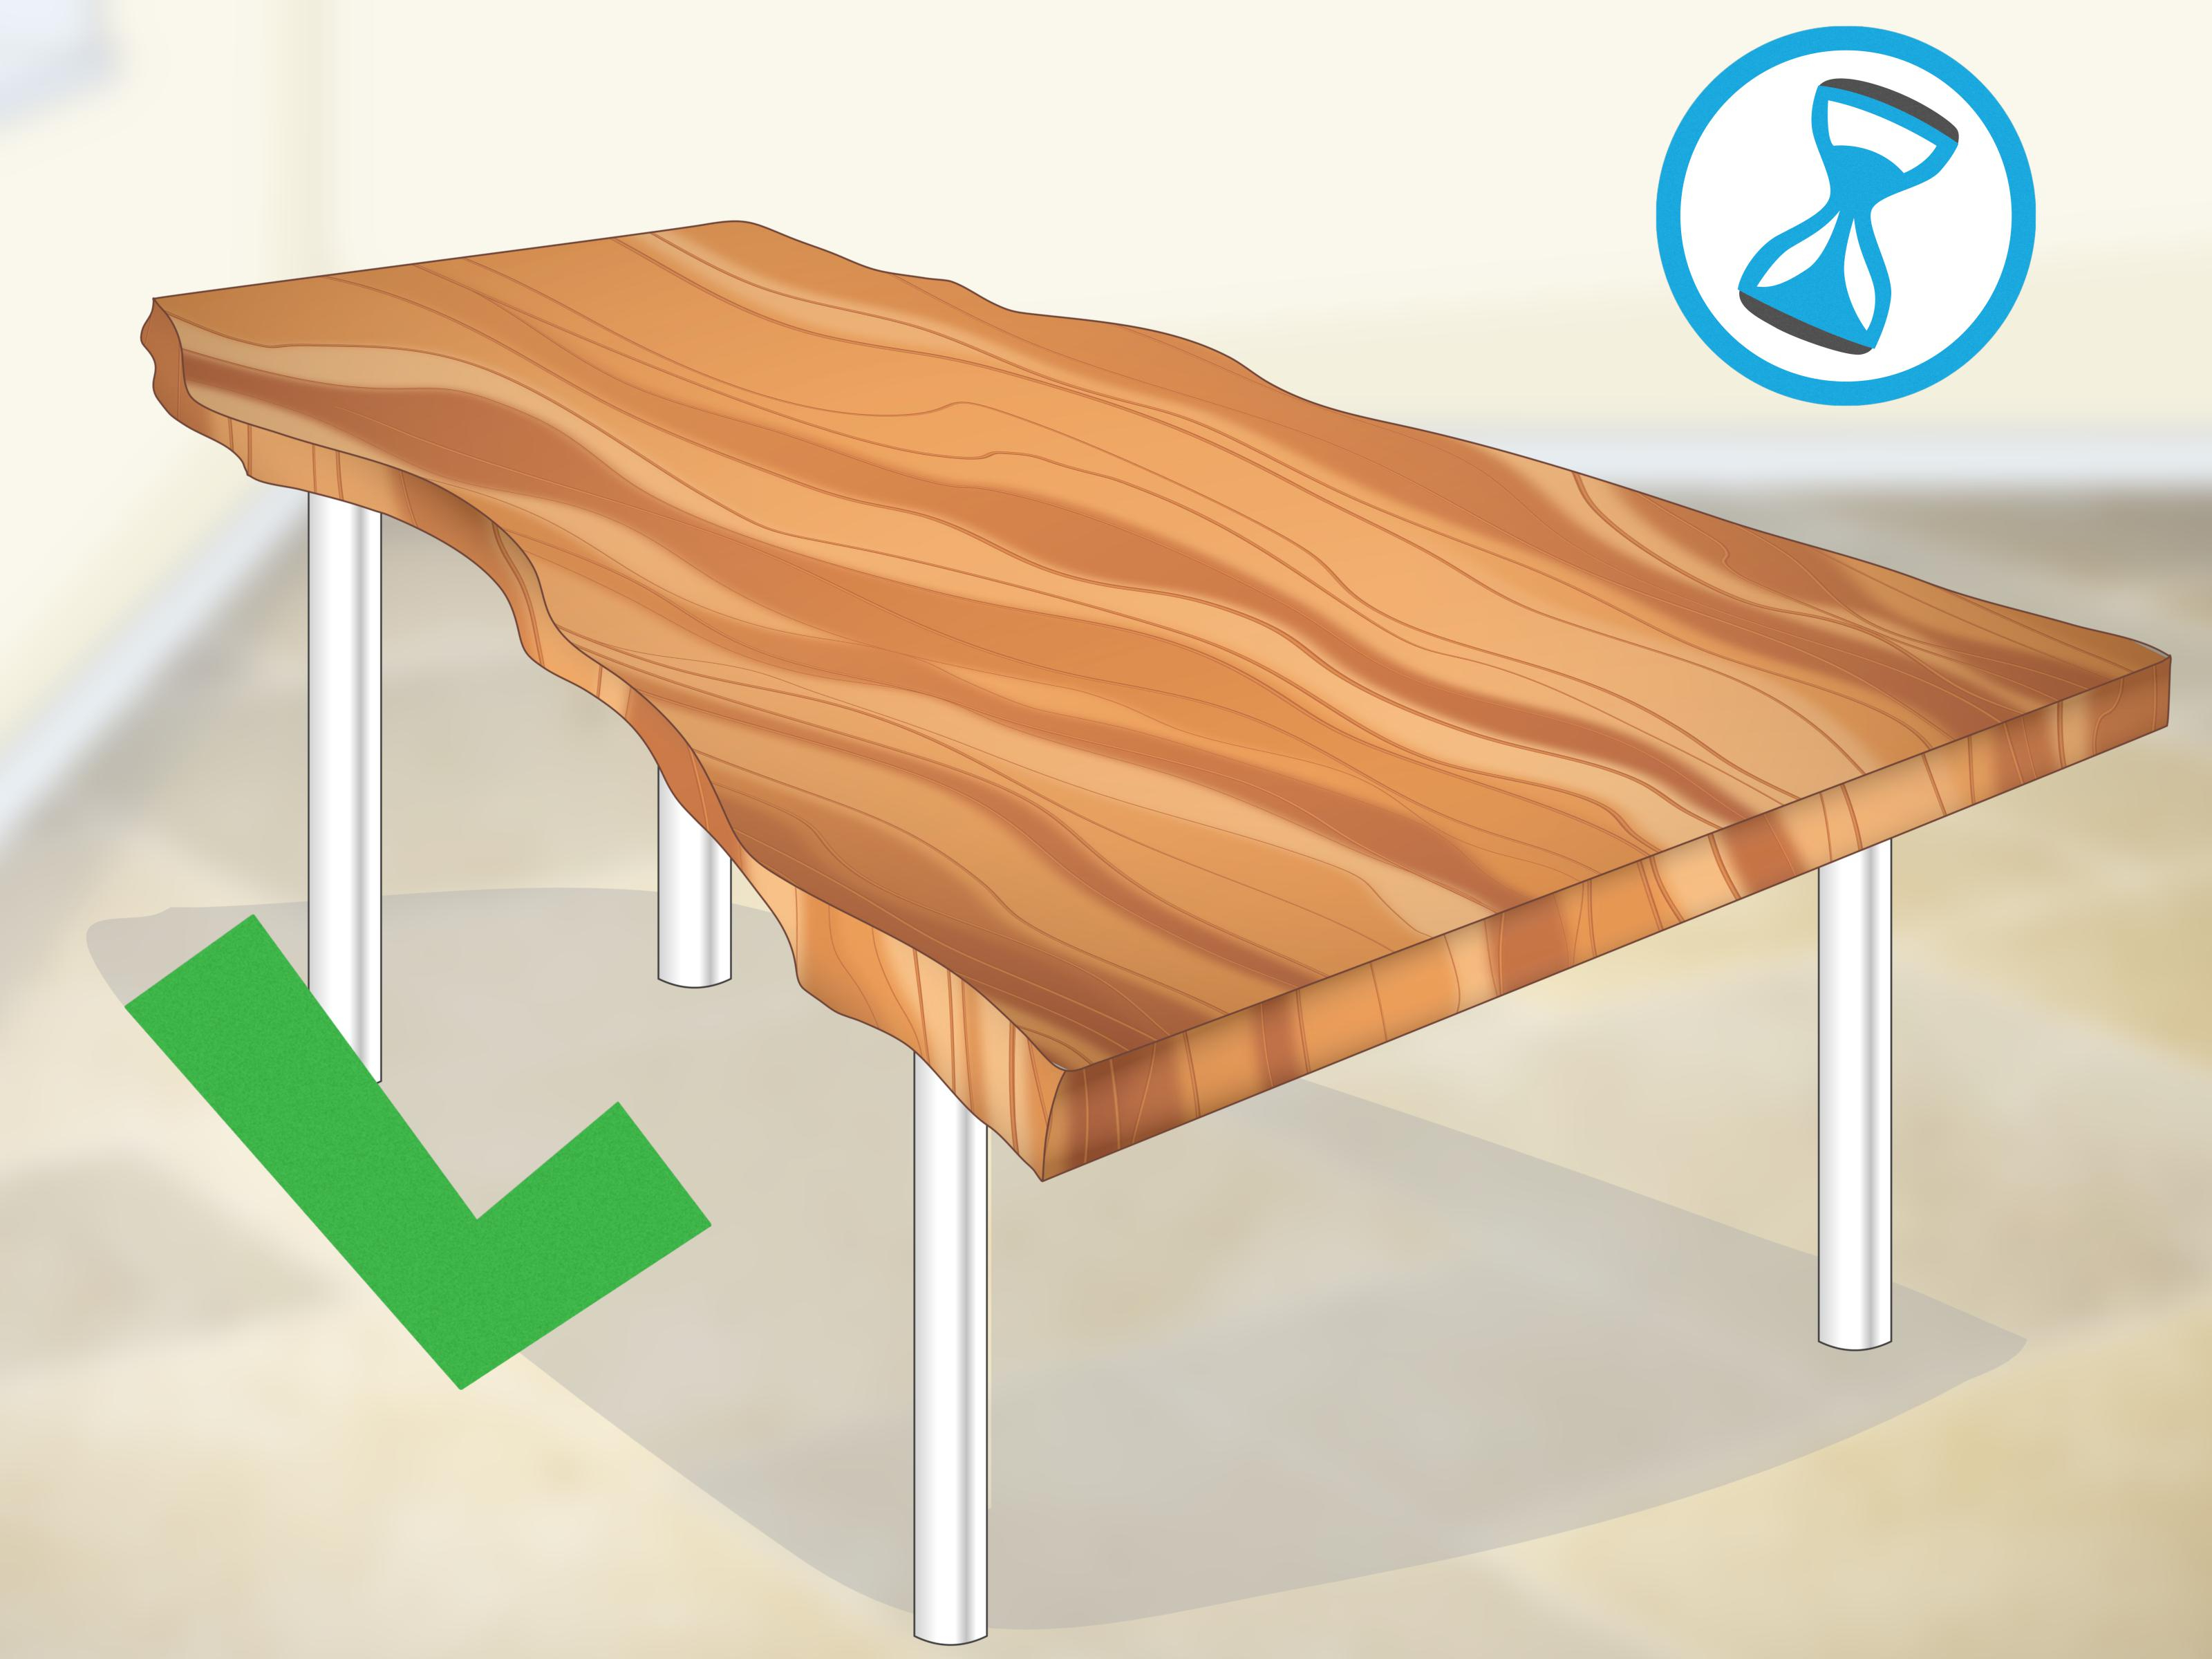 Natural Wheel Coffee Tables Within Most Up To Date How To Finish Live Edge Slabs (With Pictures) – Wikihow (View 13 of 20)